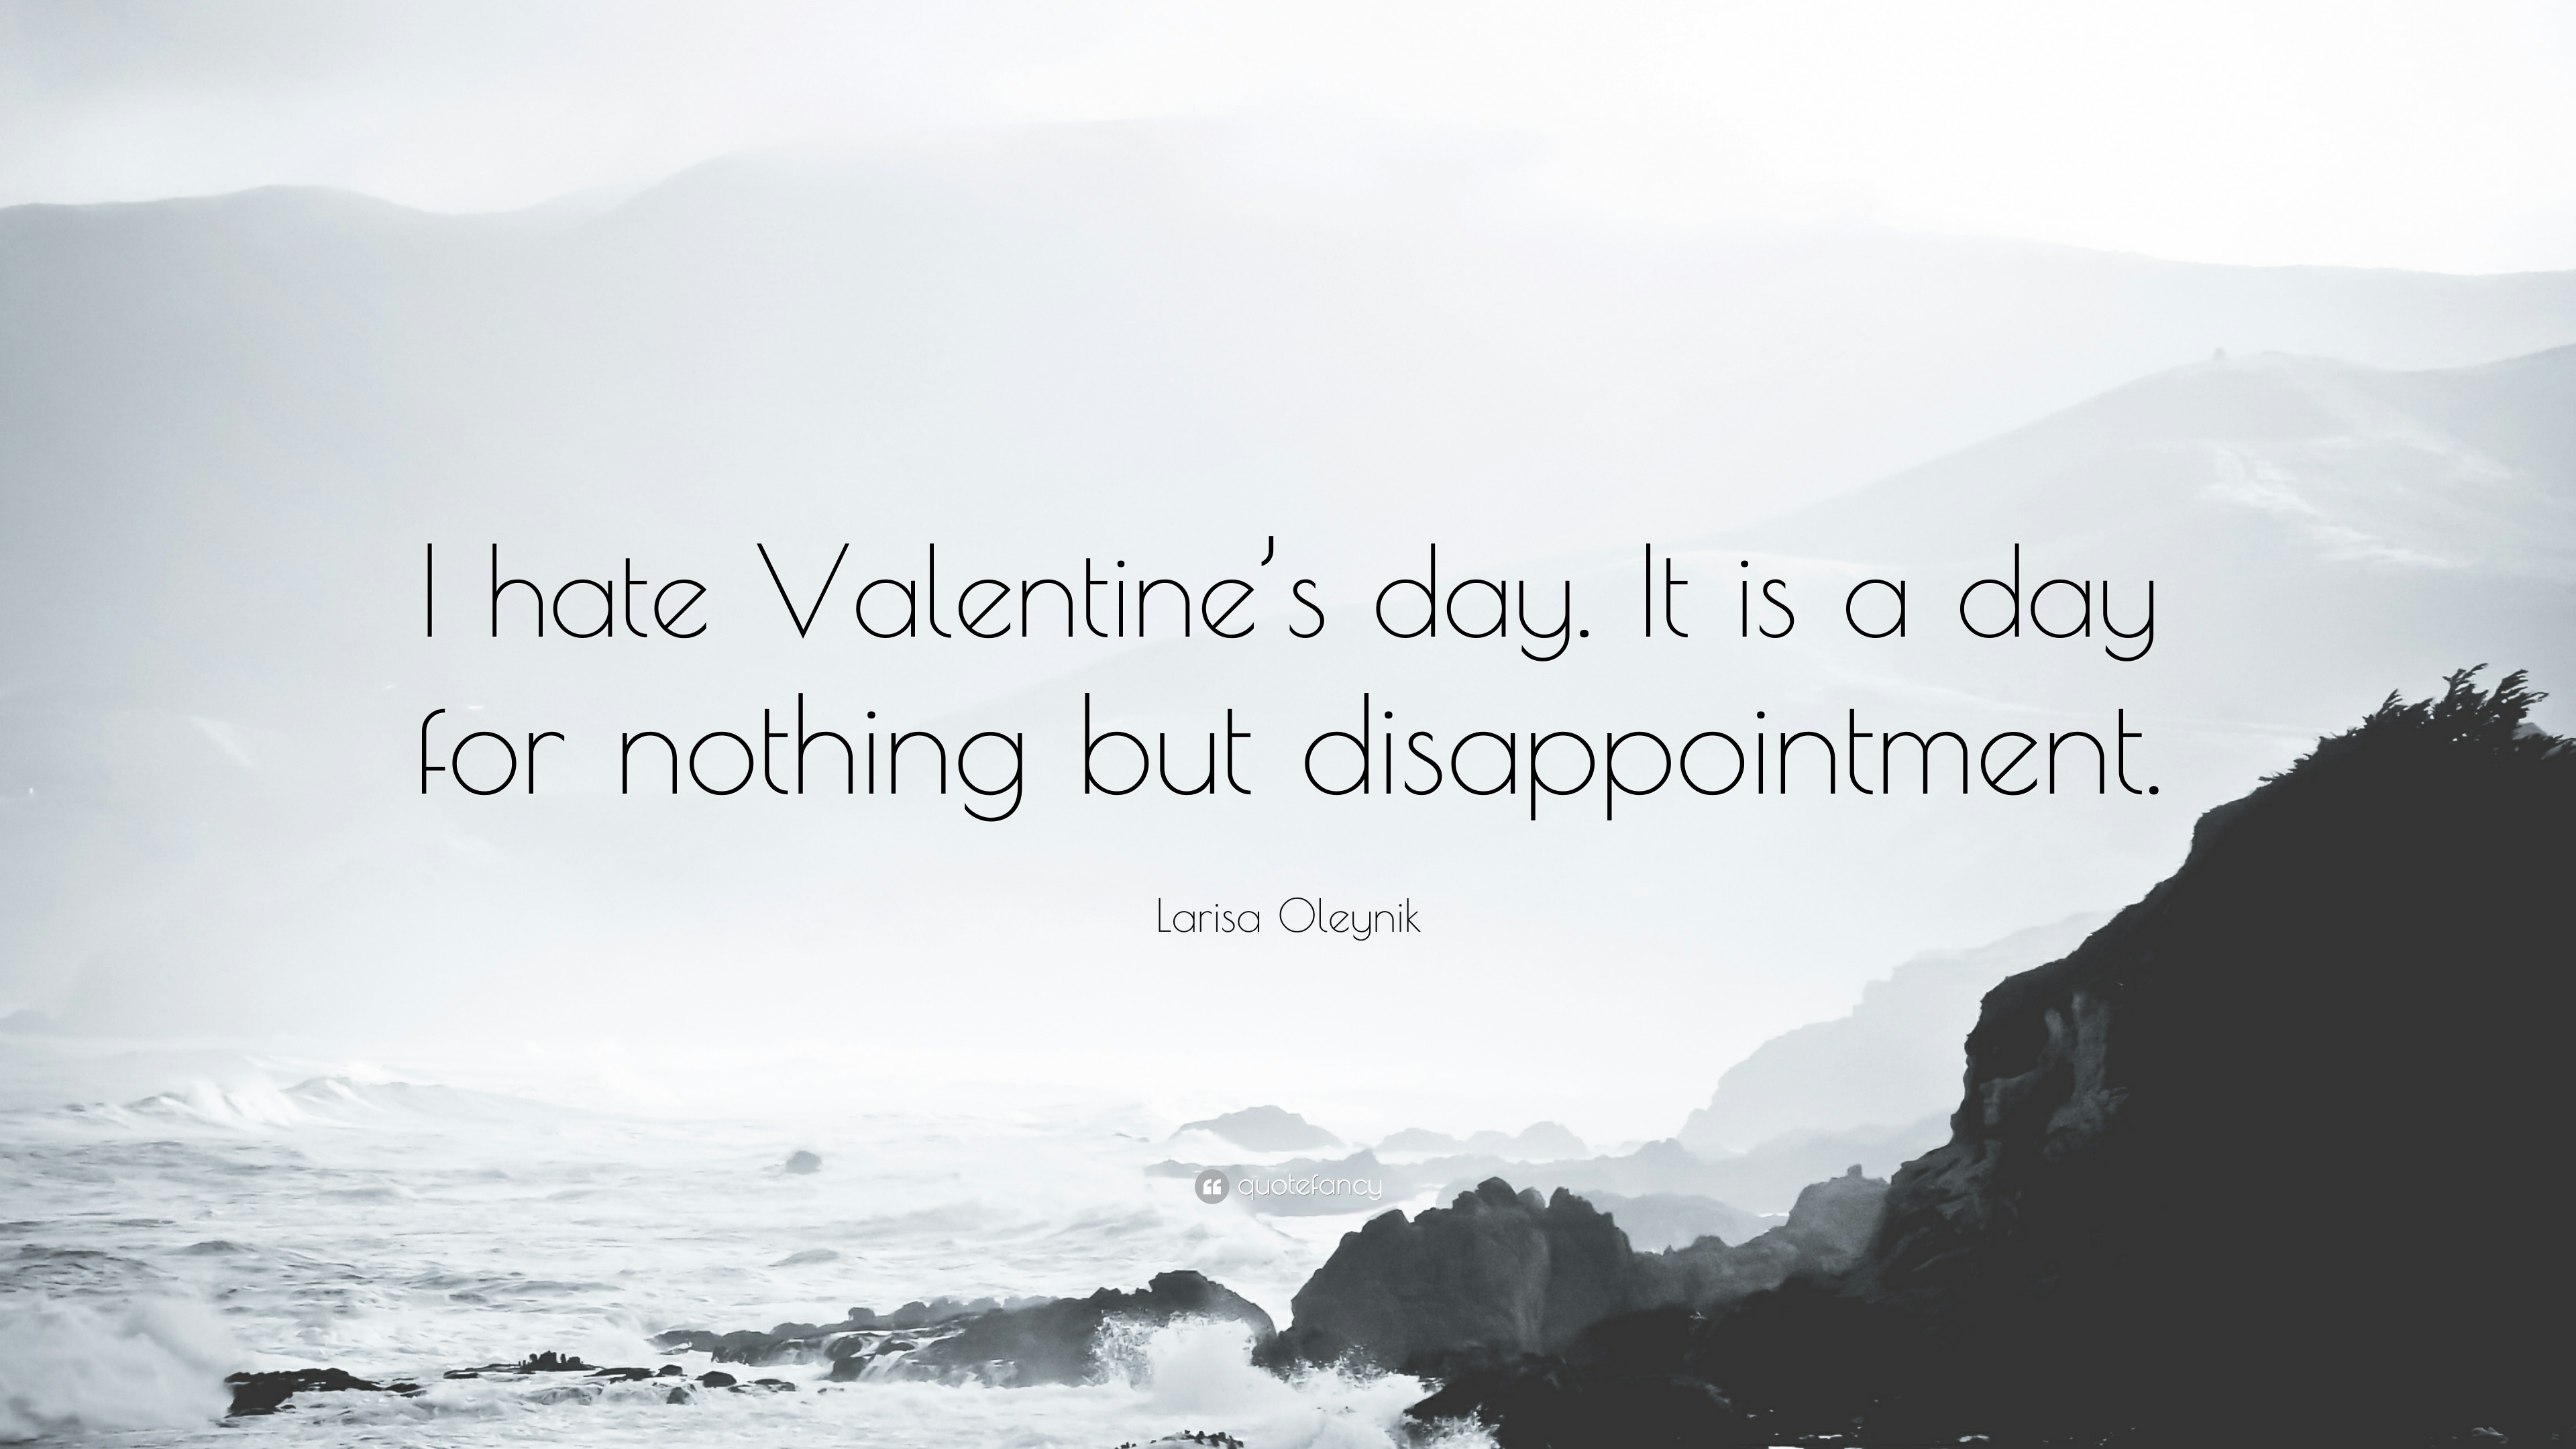 larisa oleynik quote i hate valentines day it is a day for nothing